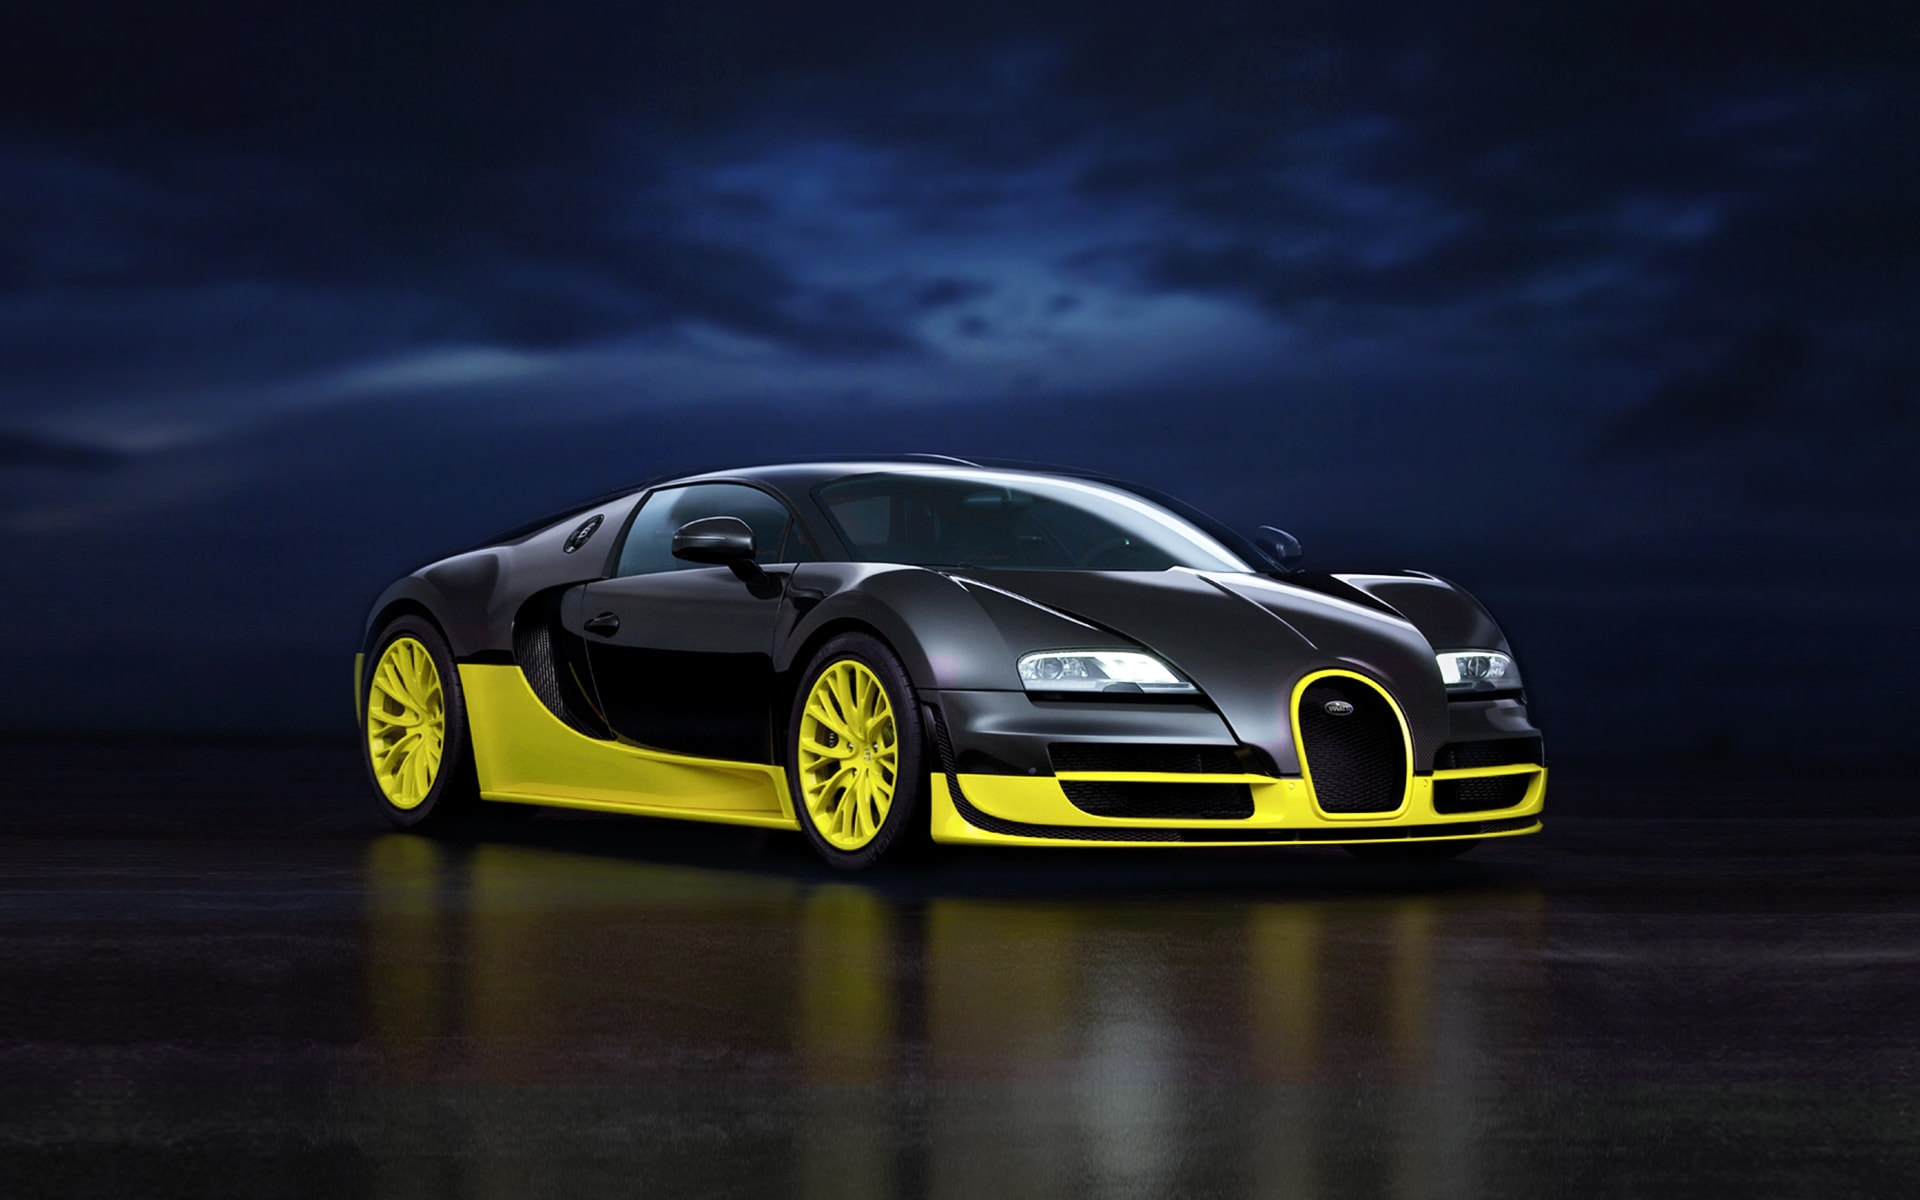 Bugatti Veyron Super Sport Wallpapers